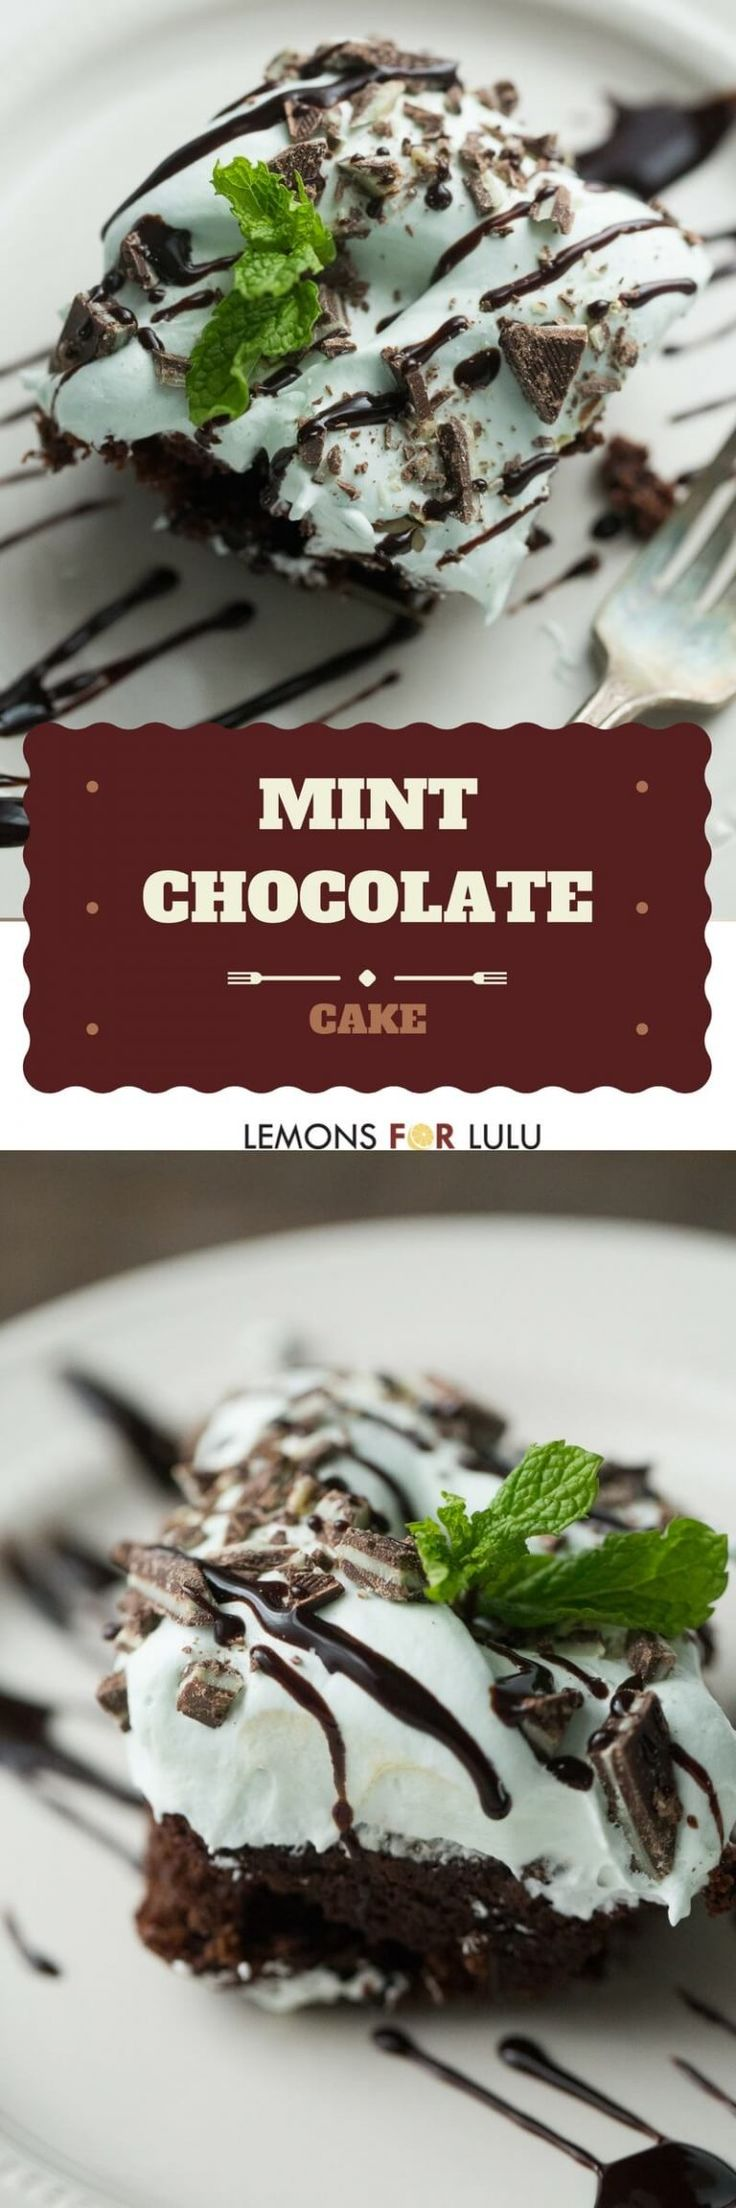 Best 25+ Mint chocolate cakes ideas on Pinterest | Mint chocolate ...